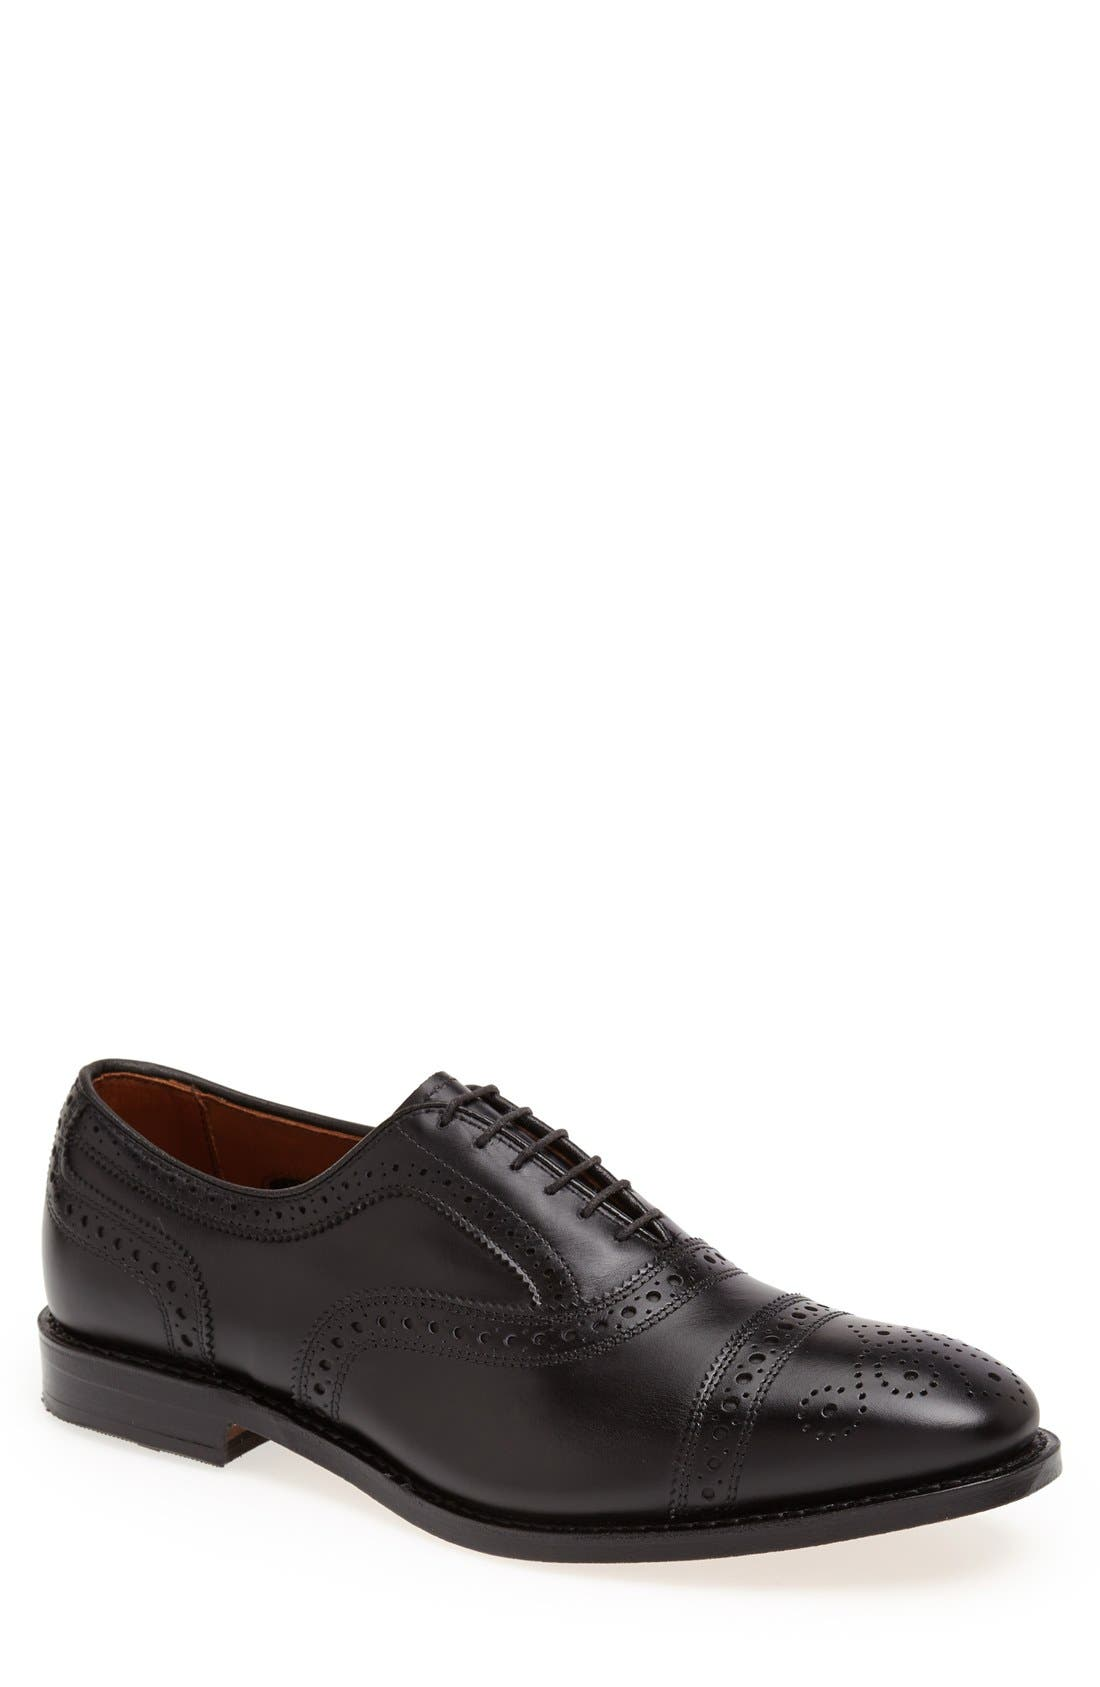 Main Image - Allen Edmonds 'Strand' Cap Toe Oxford (Men)